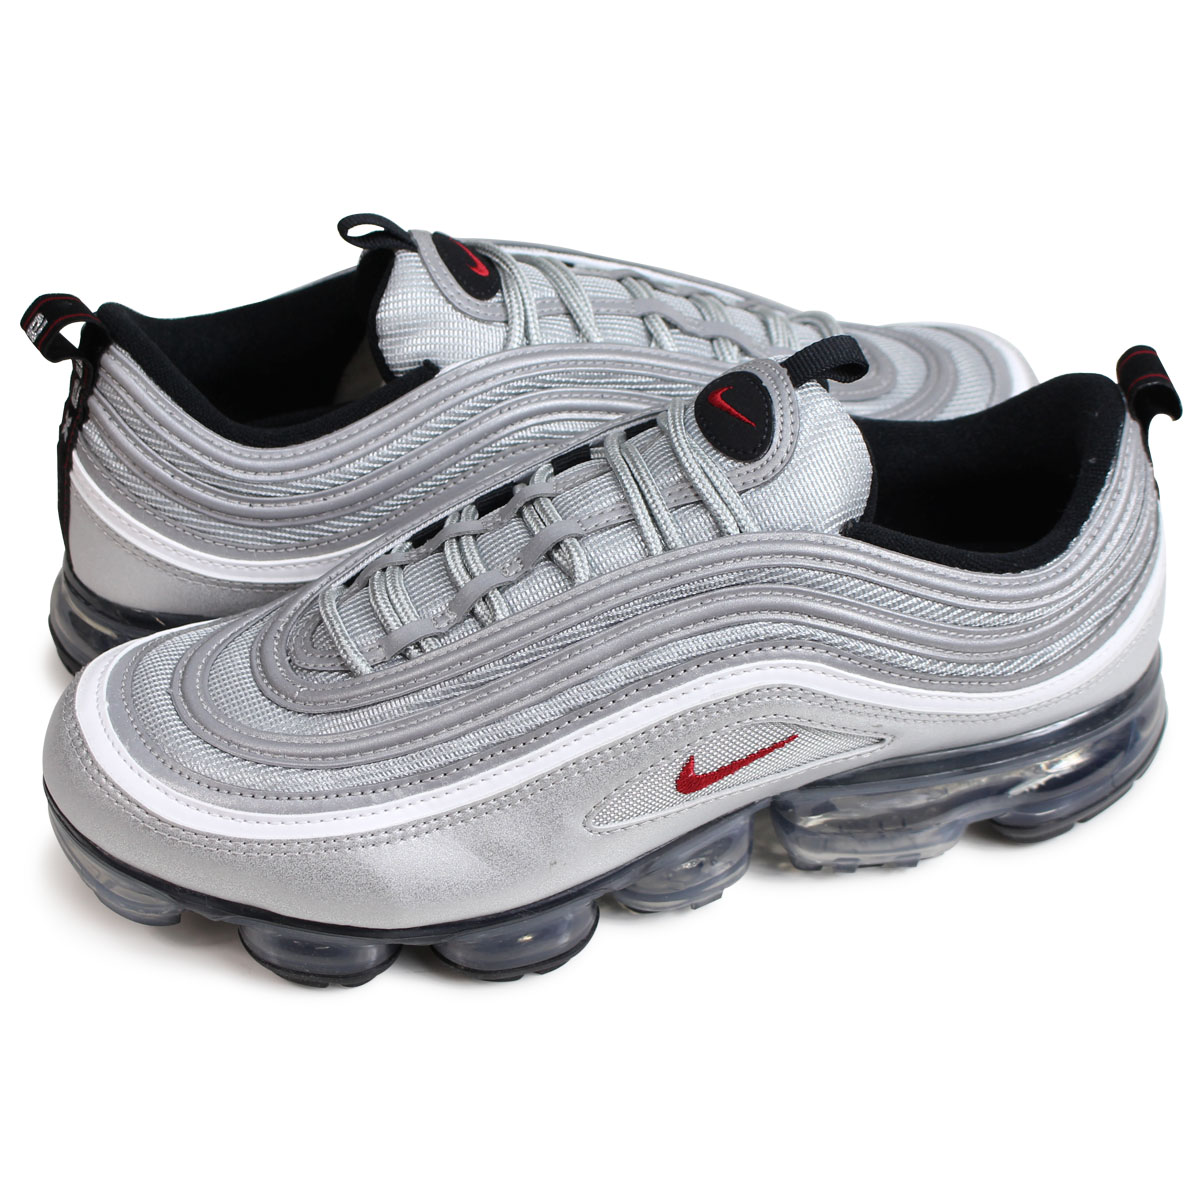 02bacc68e46 Whats up Sports  NIKE AIR VAPORMAX 97 Nike air vapor max 97 sneakers ...